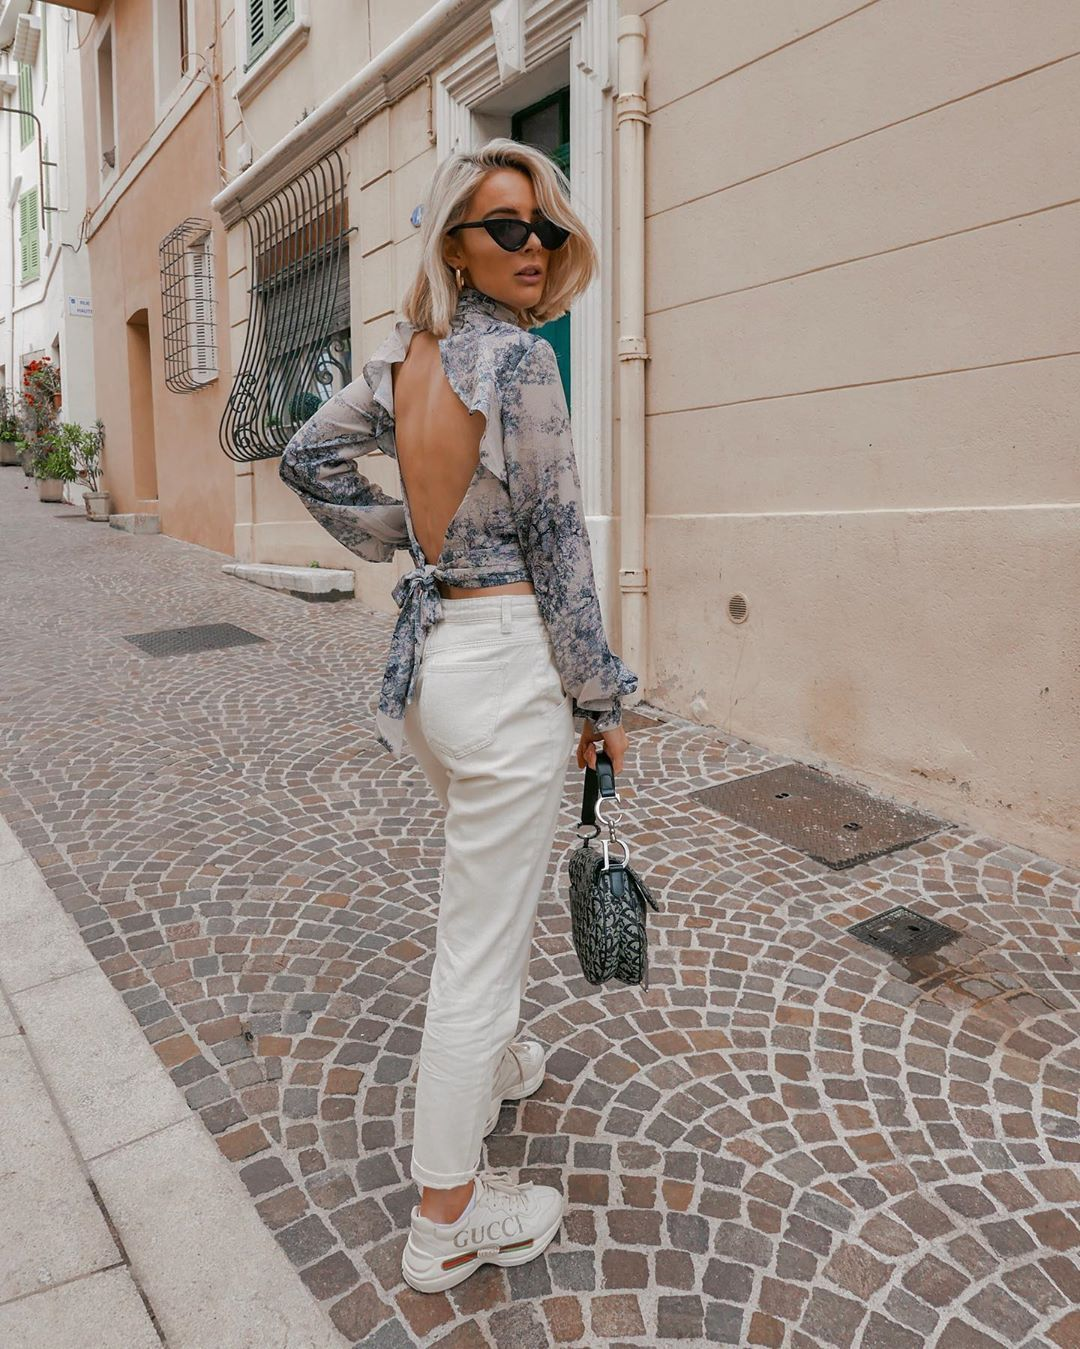 Get the top for 35€ at inthestyle.com – Wheretoget